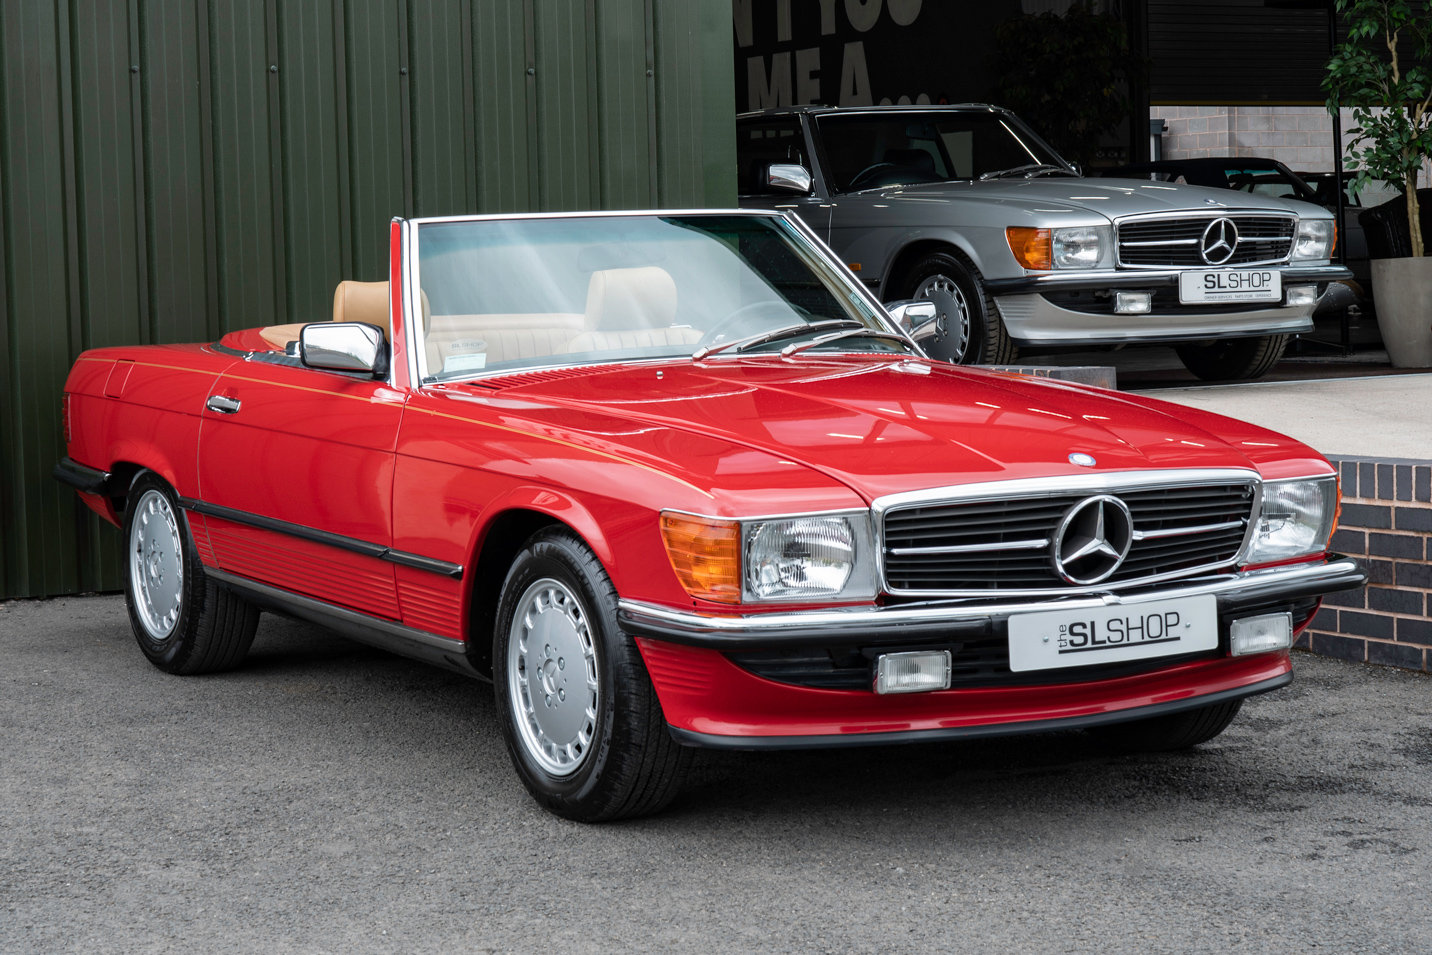 1988 Mercedes-Benz R107 560 SL Signal Red Stock #2103  For Sale (picture 1 of 6)